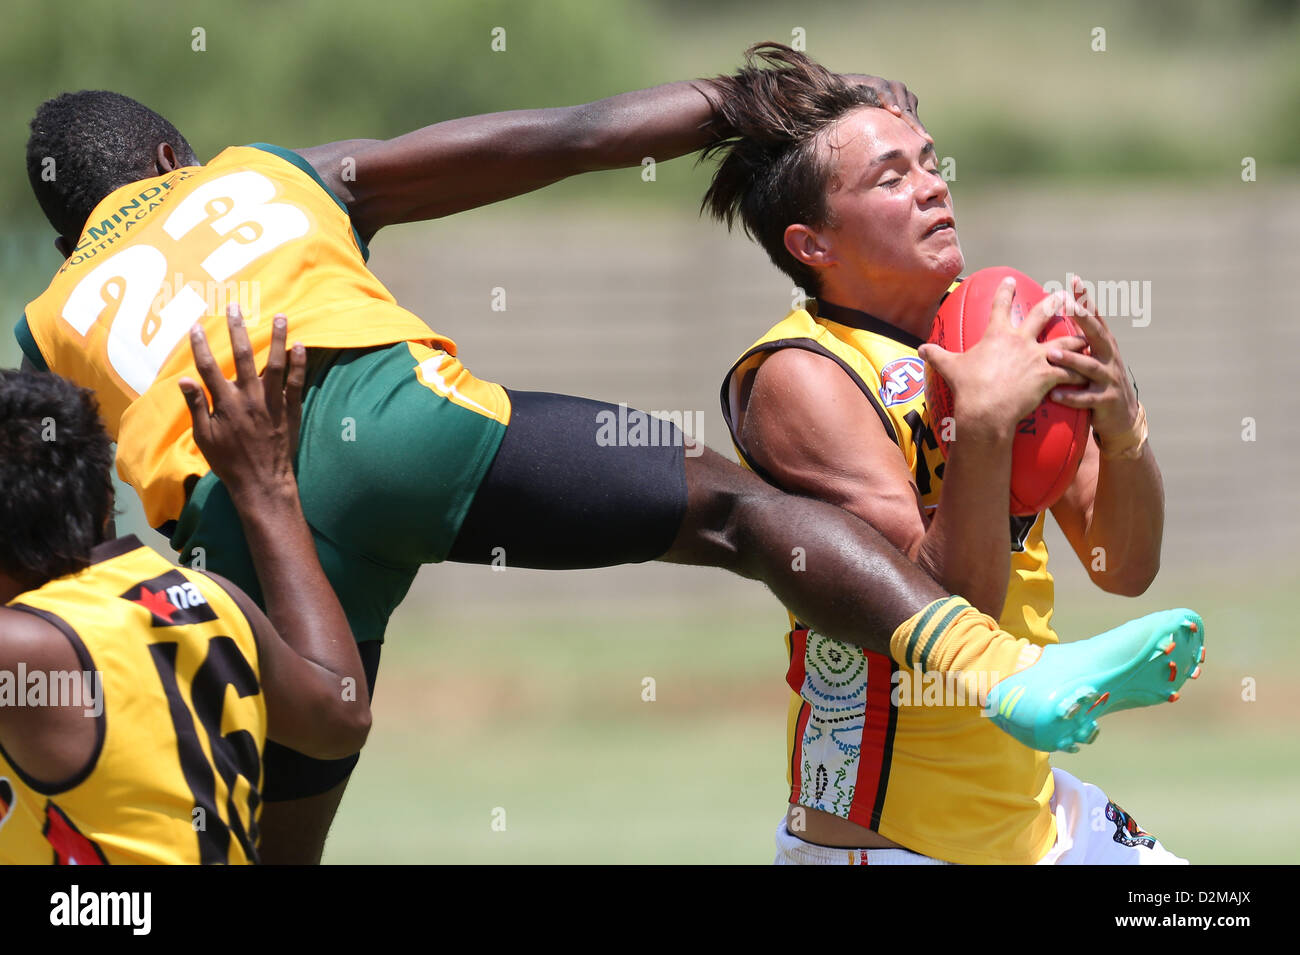 POTCHEFSTROOM, SOUTH AFRICA - JANUARY 28, Jayden Gerrand (Sinagra, WA) of the Australian Boomerangs gets his face - Stock Image